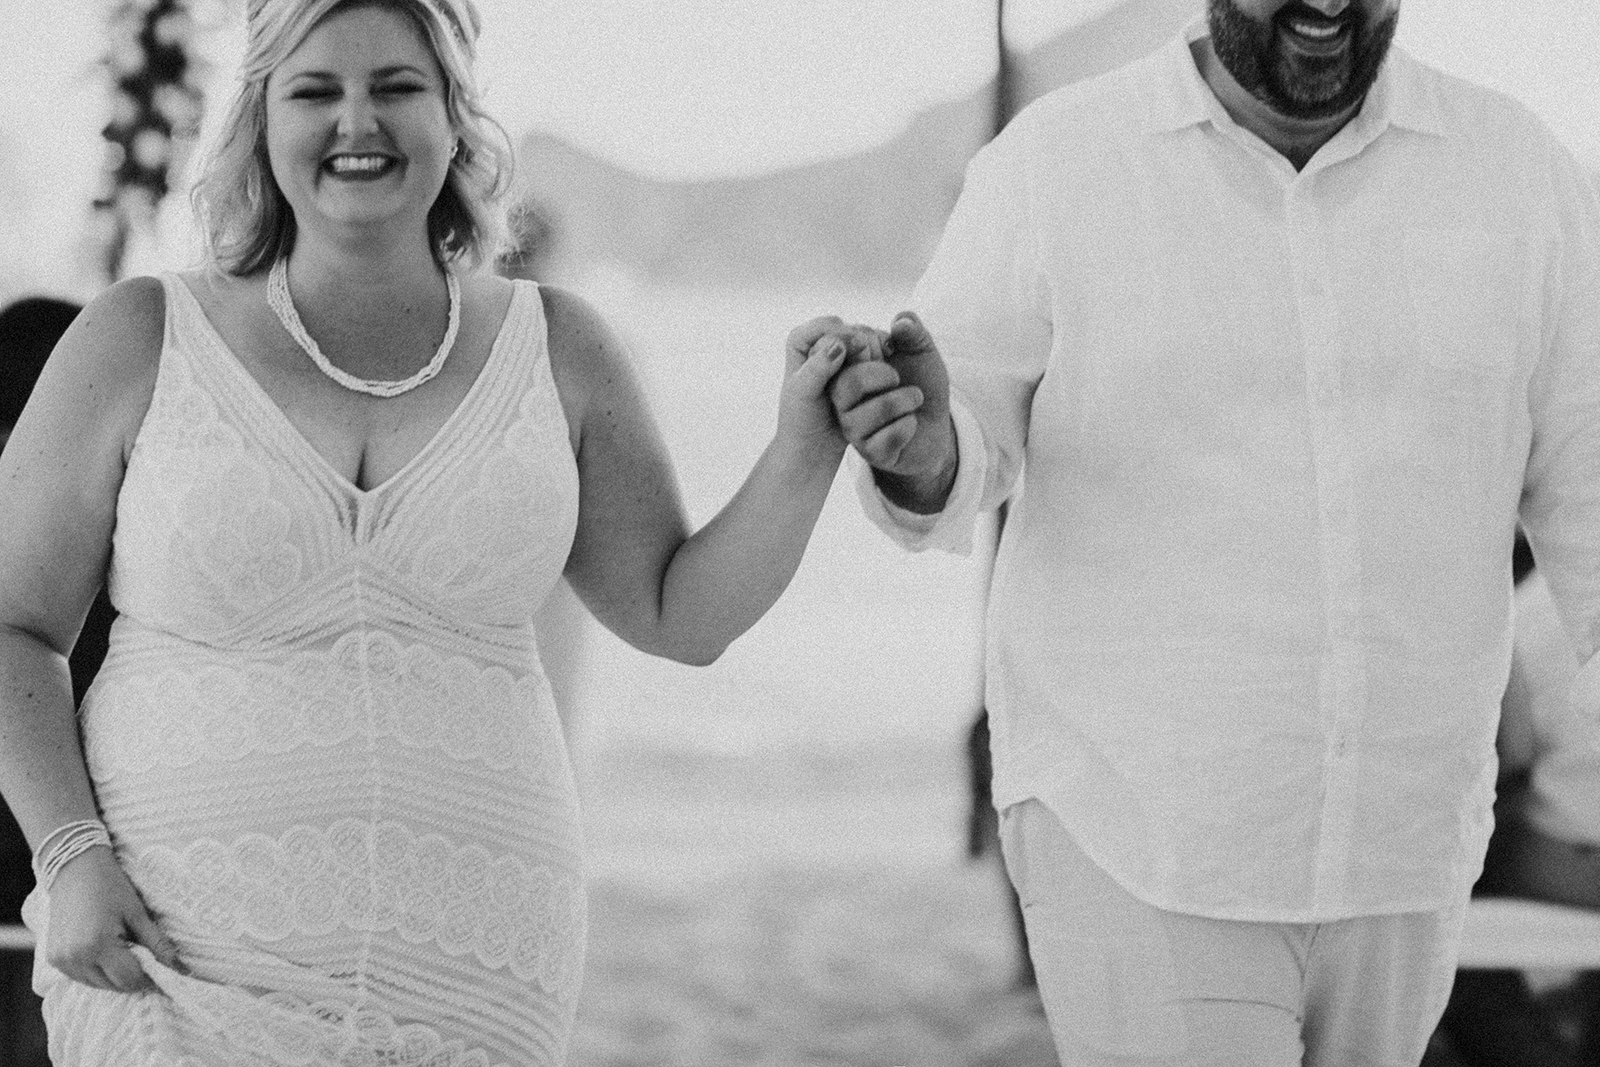 myrtle-and-moss-photography-meghan-and-chad-cabo-wedding-blog-post57